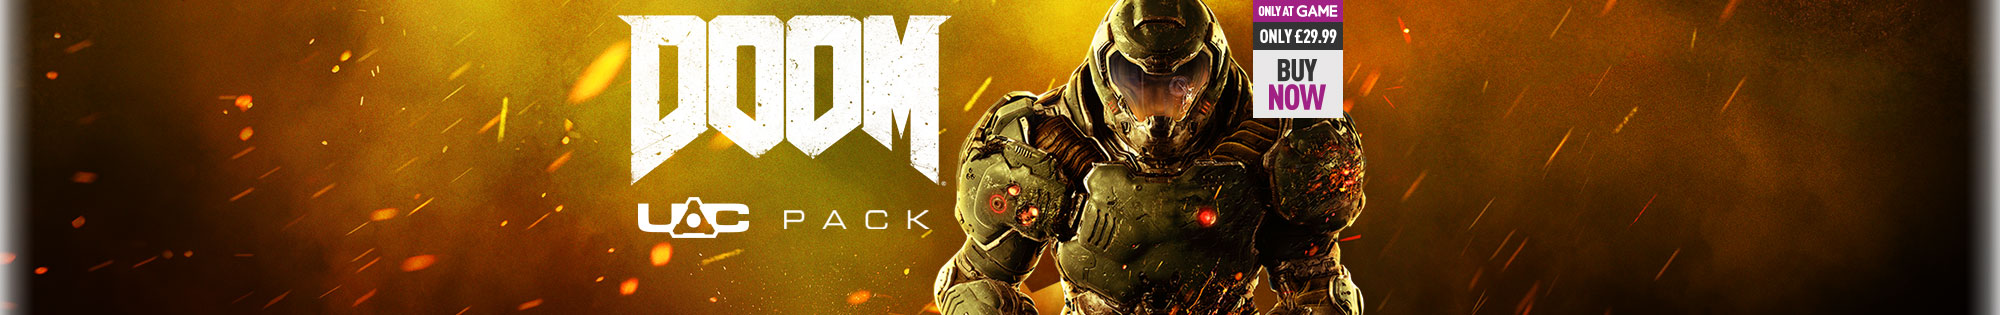 DOOM UAC Pack Offer Only at GAME on Xbox One, PS4 and PC - Buy Now at GAME.co.uk!